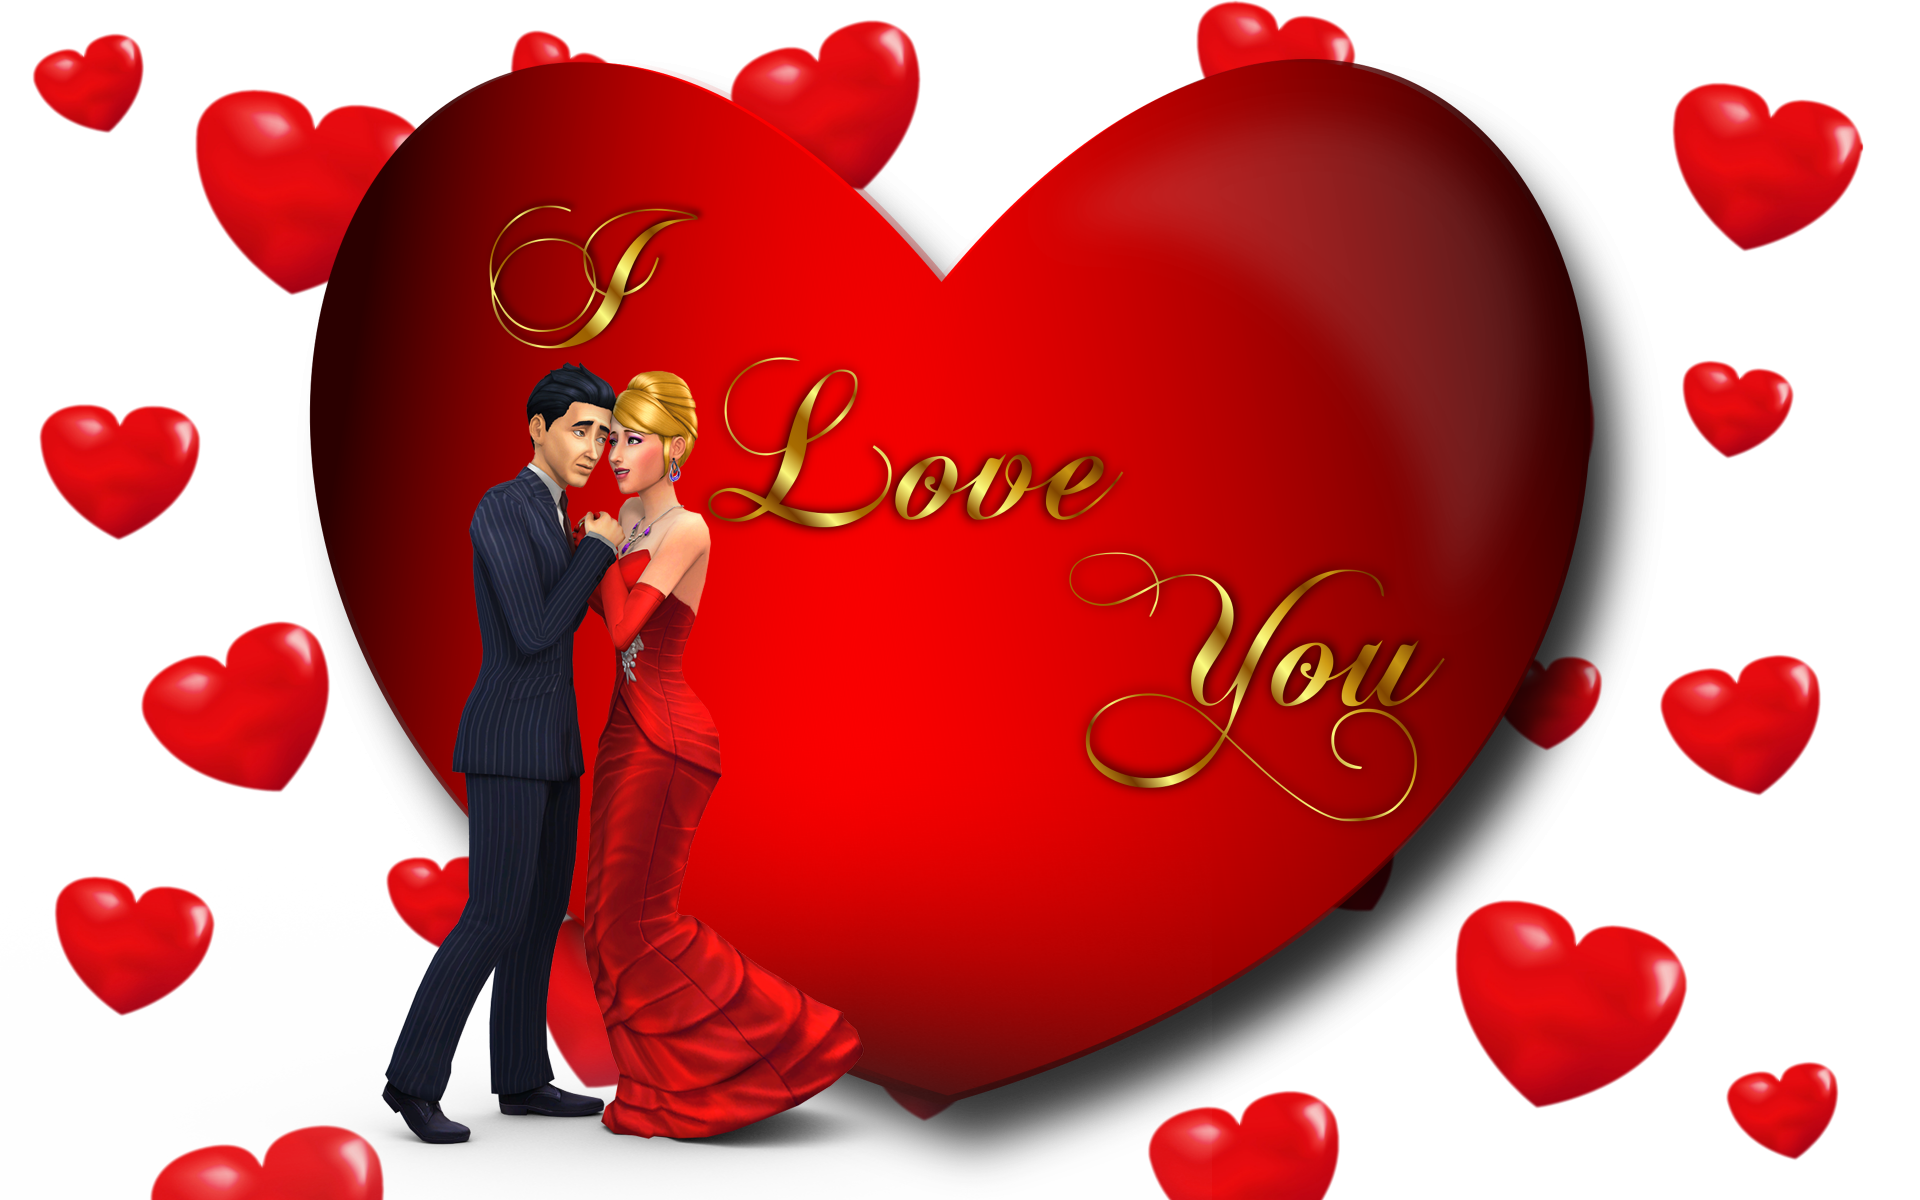 Heart wallpaper clipart royalty free library I Love You Loving Couple Red Heart Desktop Hd Wallpaper For Mobile ... royalty free library